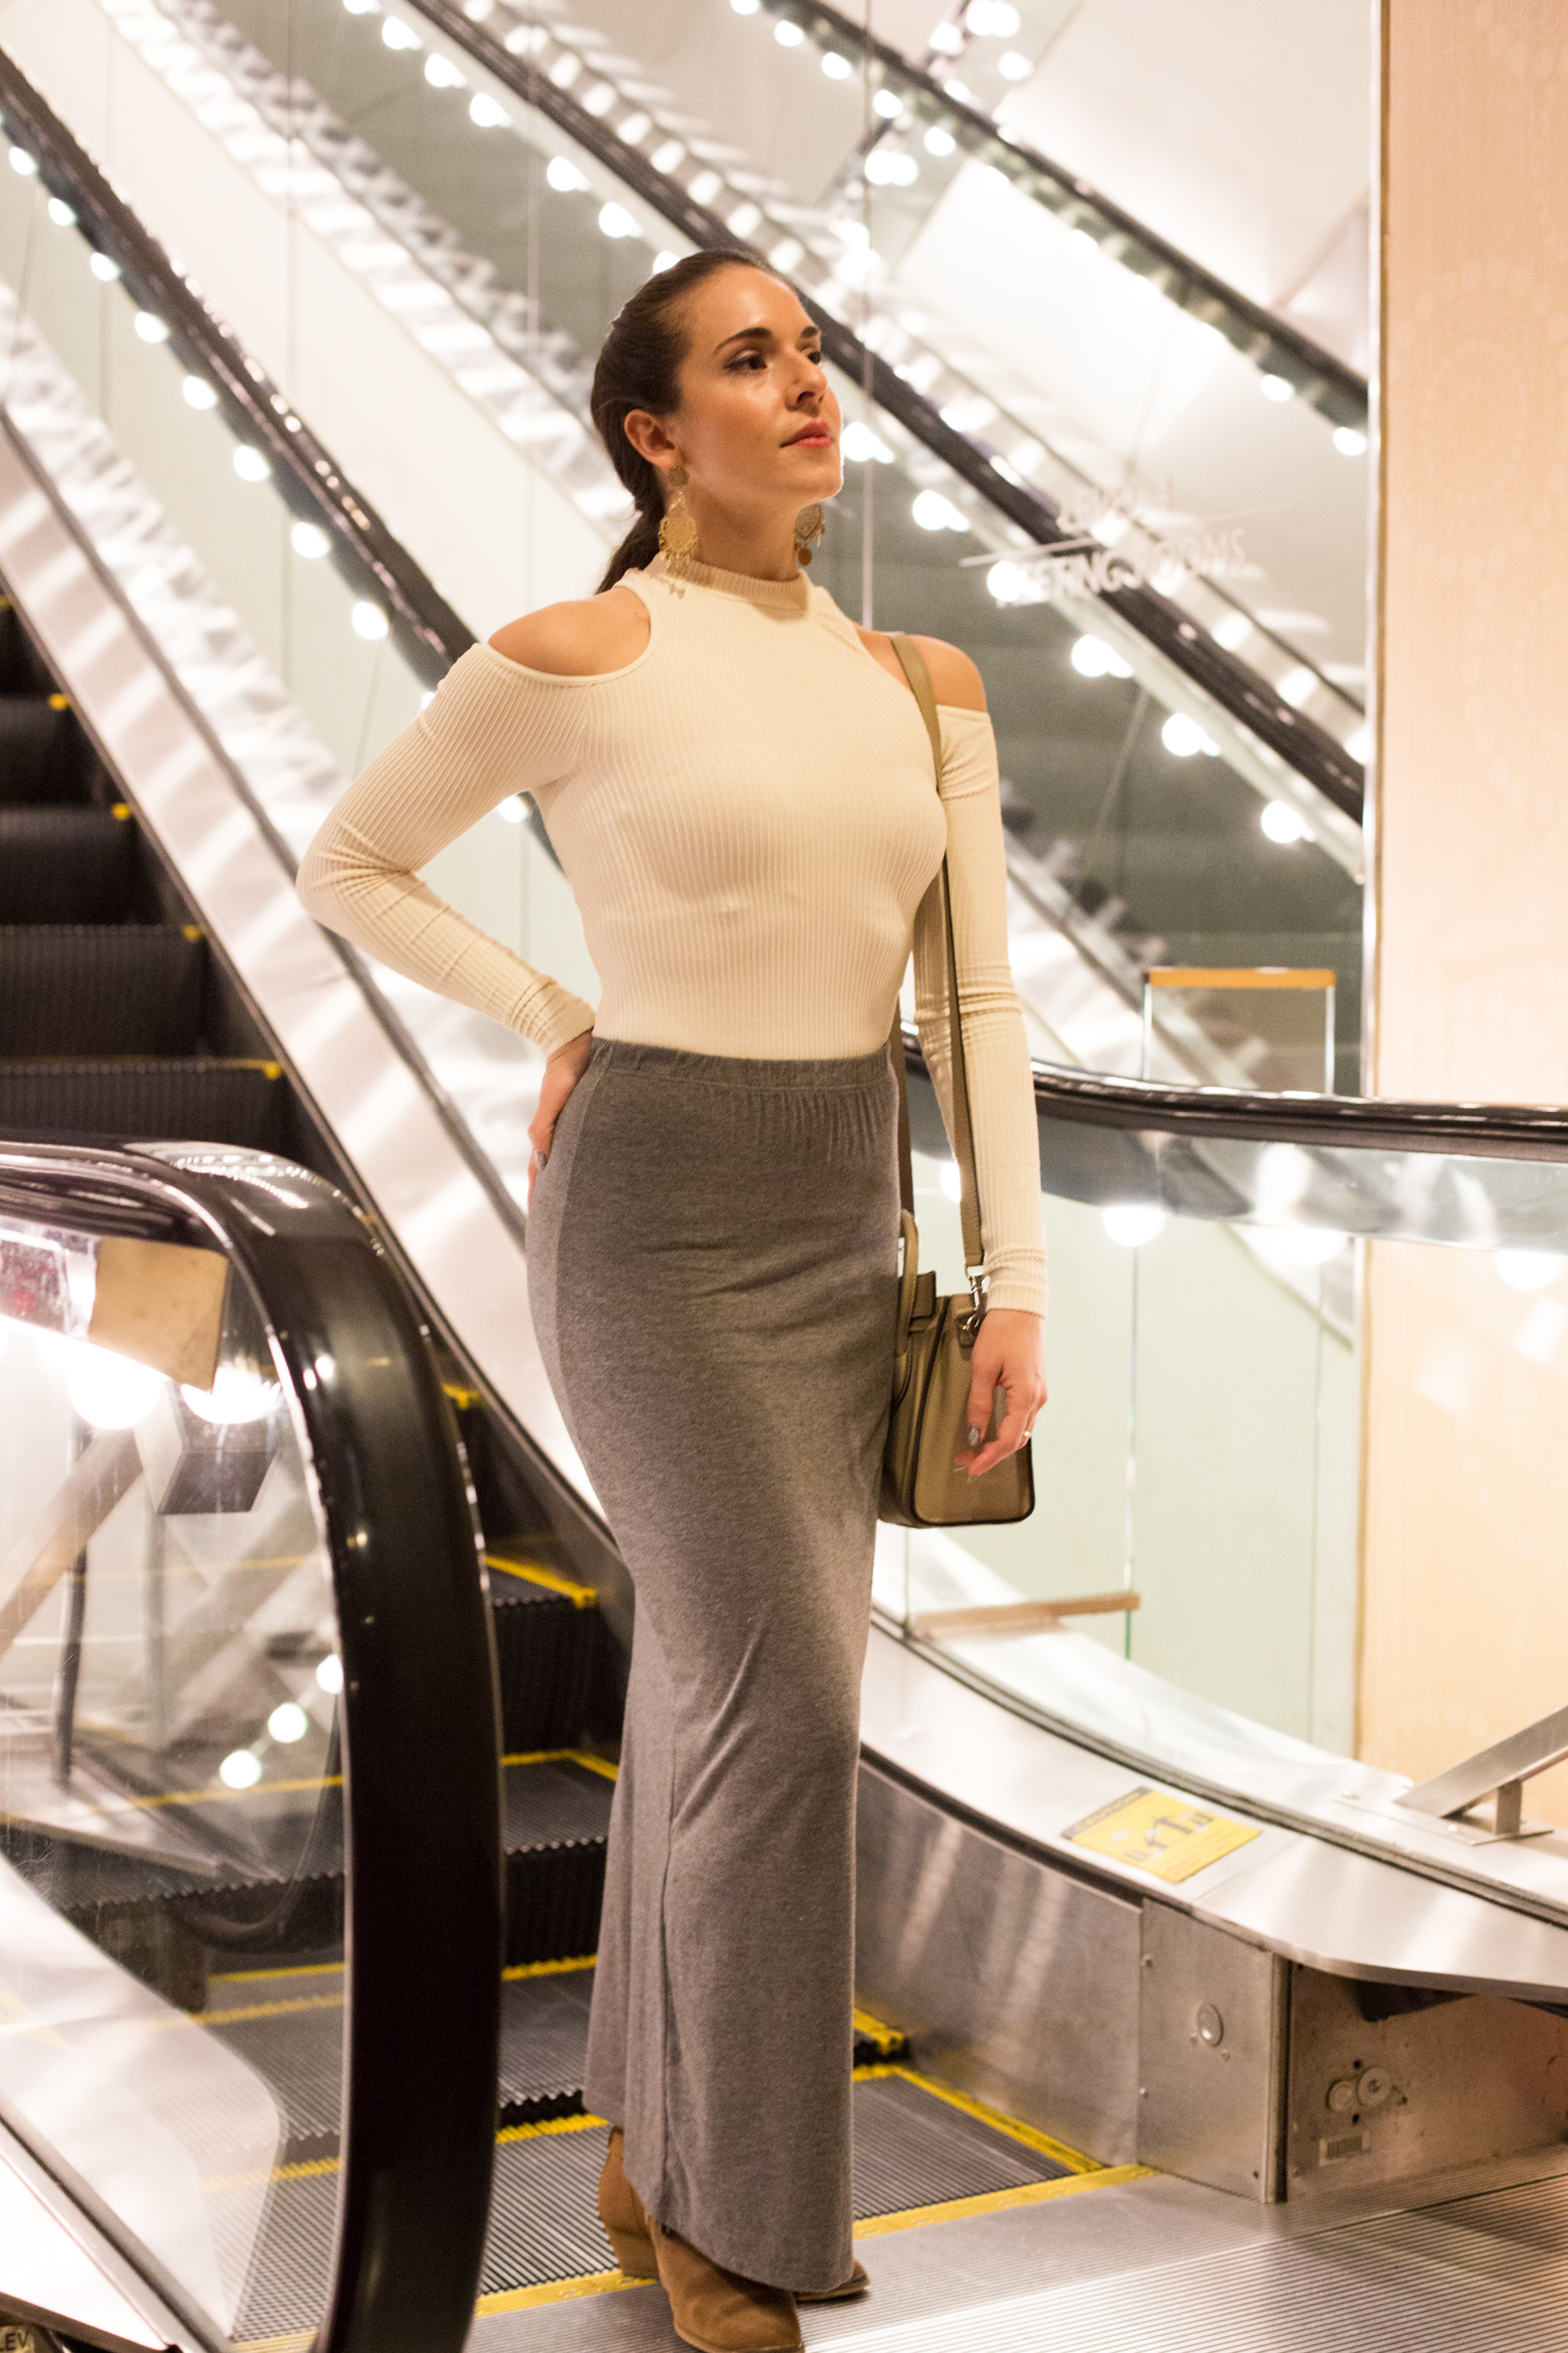 """At """"On Your Feet"""" Broadway wearing my  Celine  Nano Crossbody bag in nude,  Aldo  suede booties,  Brandy Melville  grey long skirt, Free People  """"Prima Ballerina"""" white top and earrings from Brazil. Photography by  Francisco Graciano ."""